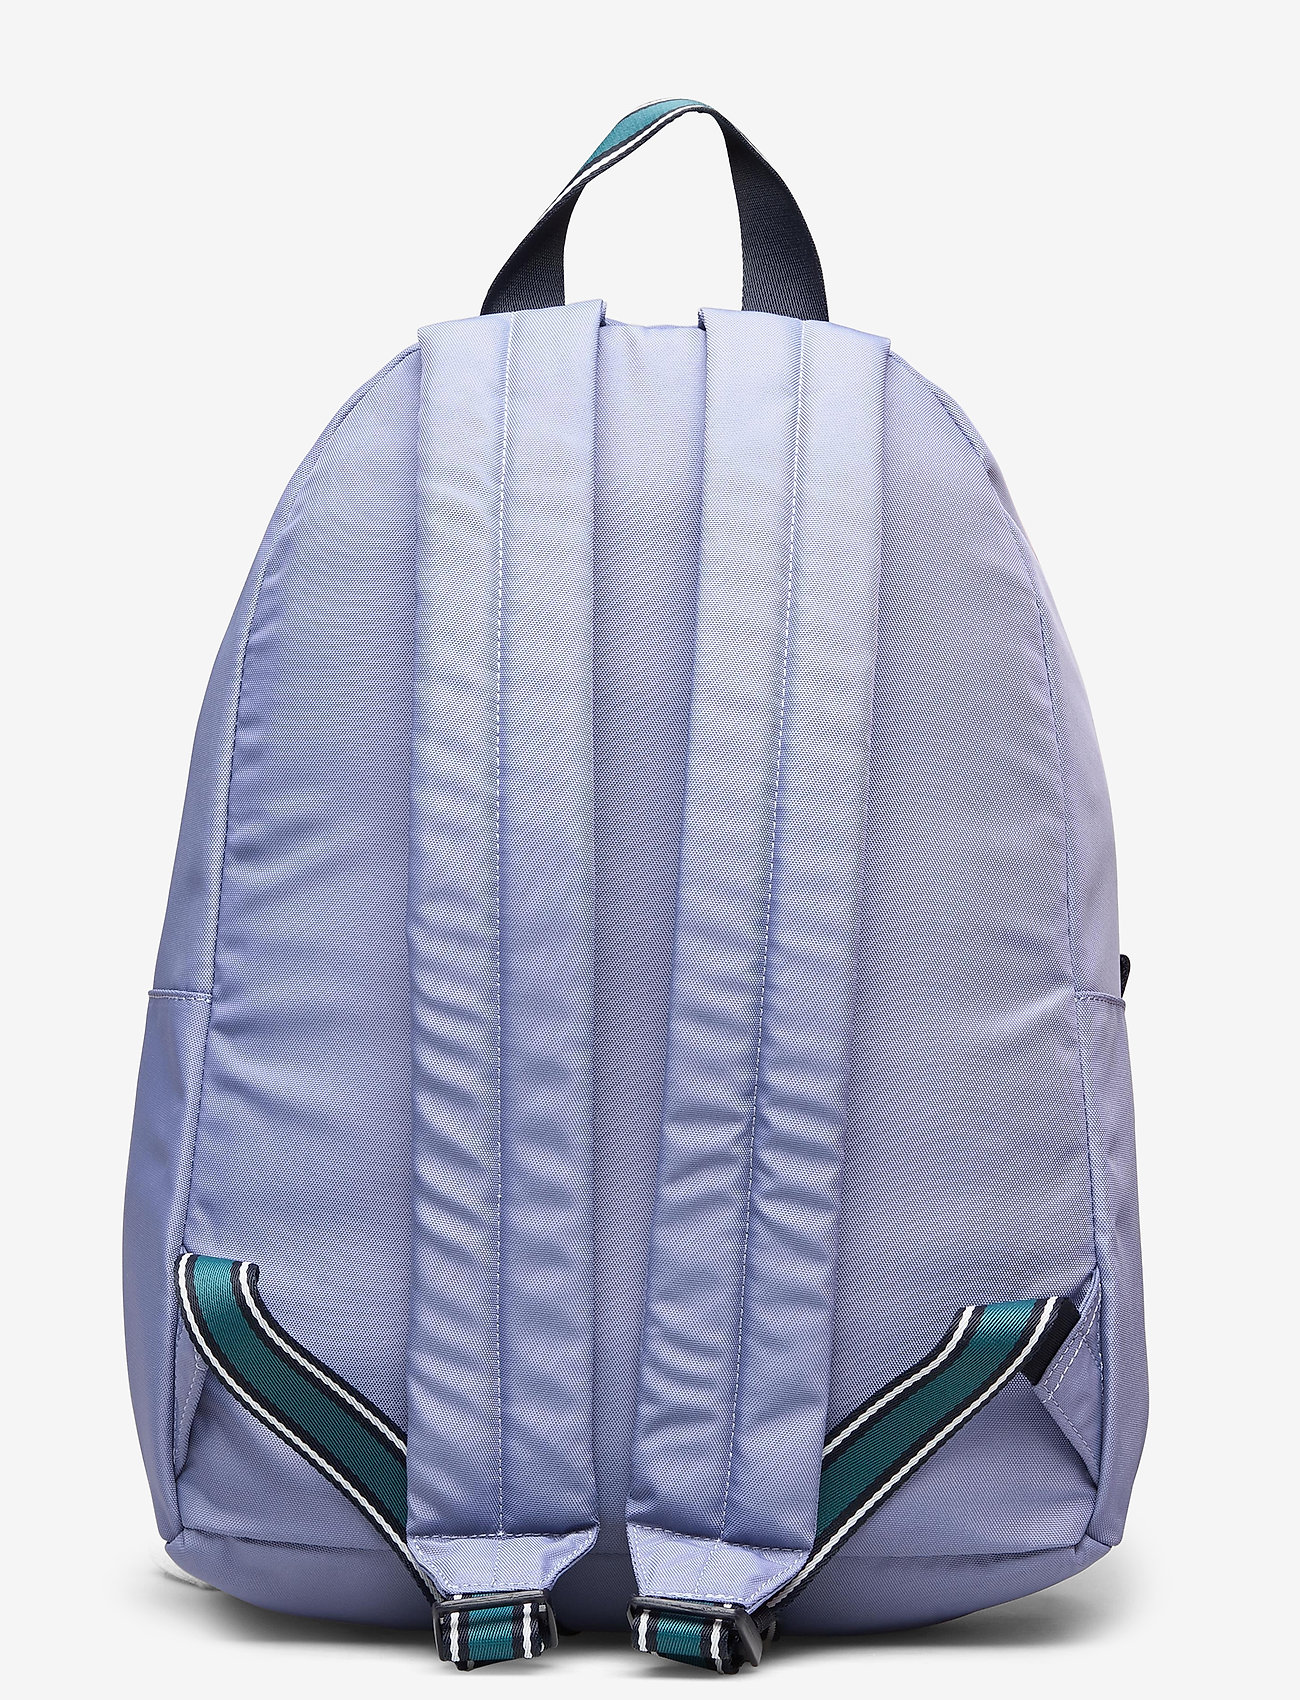 Tommy Hilfiger - TH SIGNATURE BACKPACK - sacs a dos - washed ink - 1